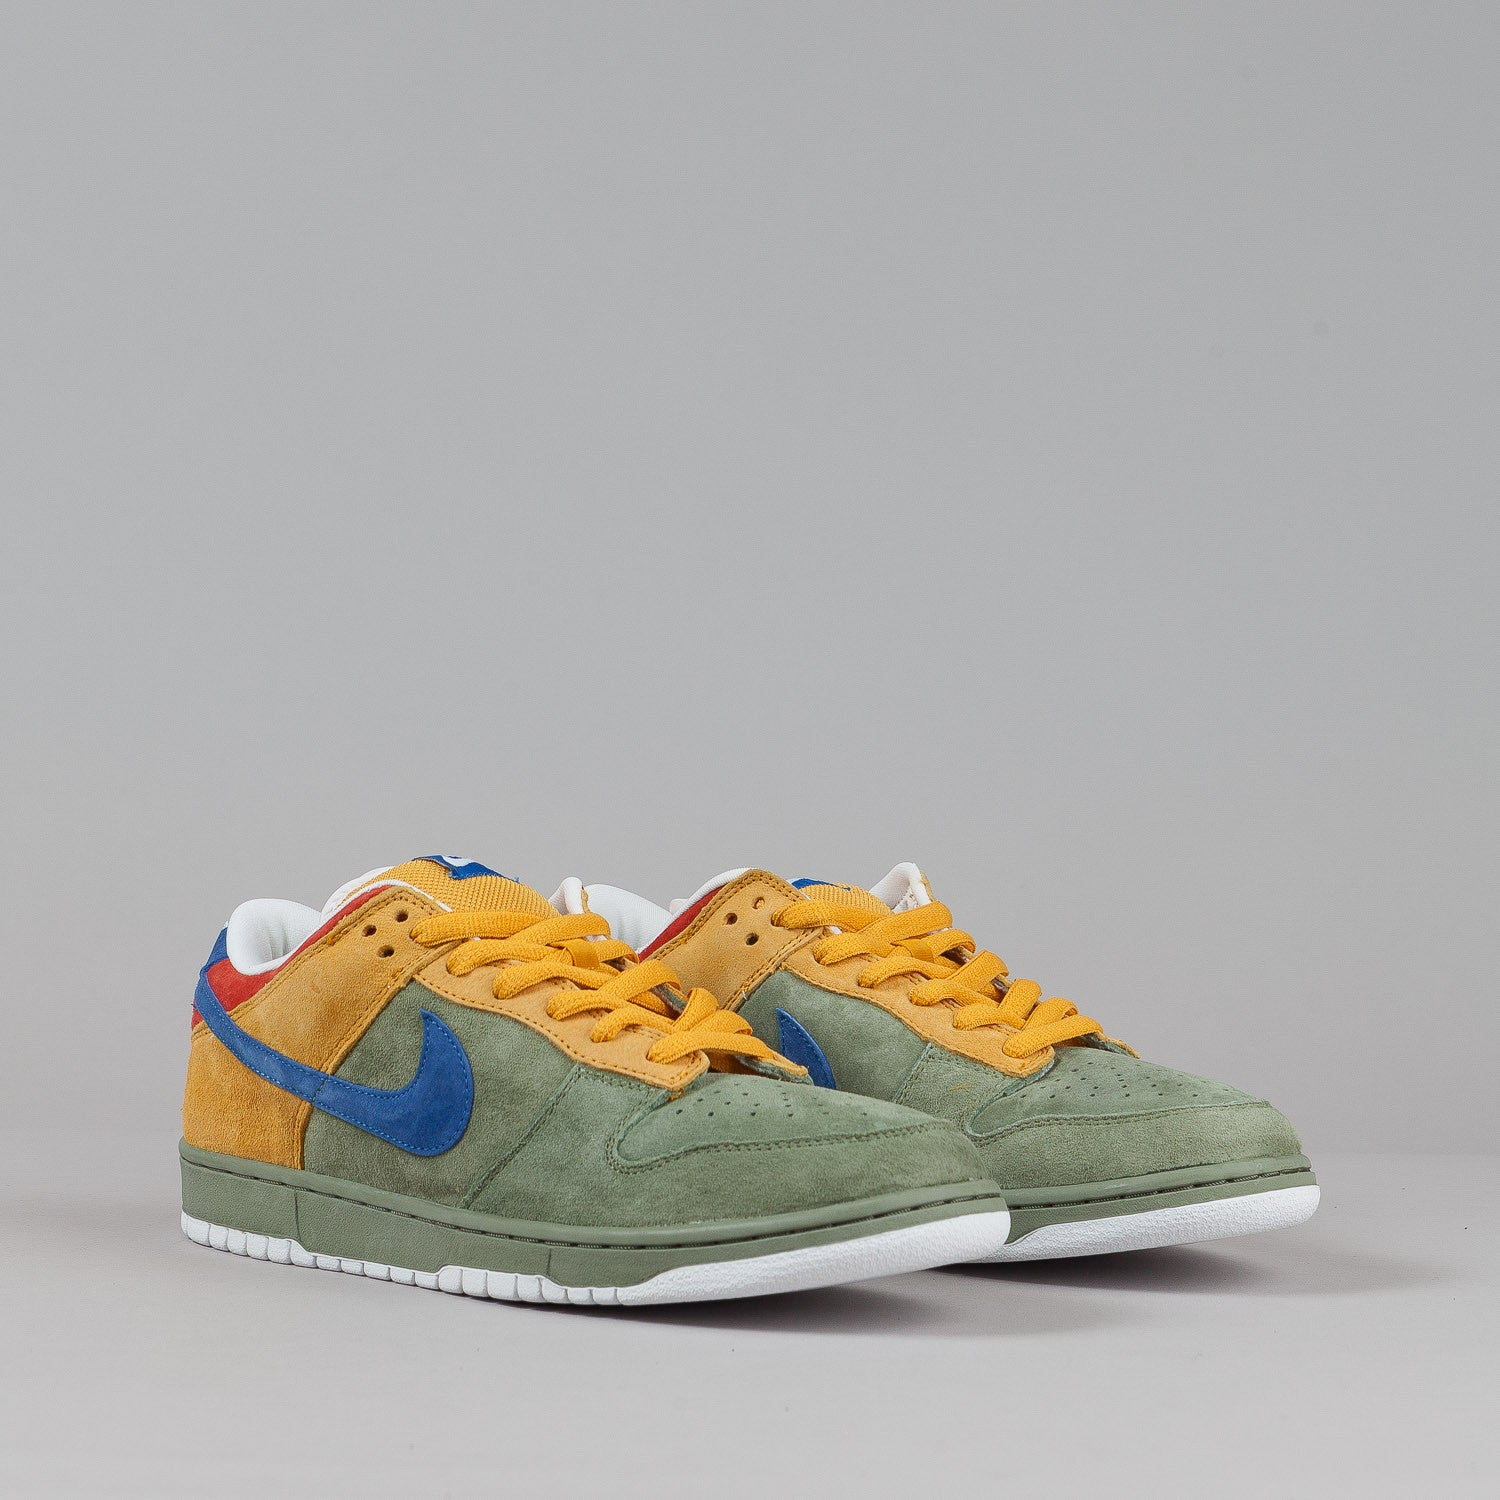 Nike SB Dunk Low Premium Shoes - Oil Green / International Blue